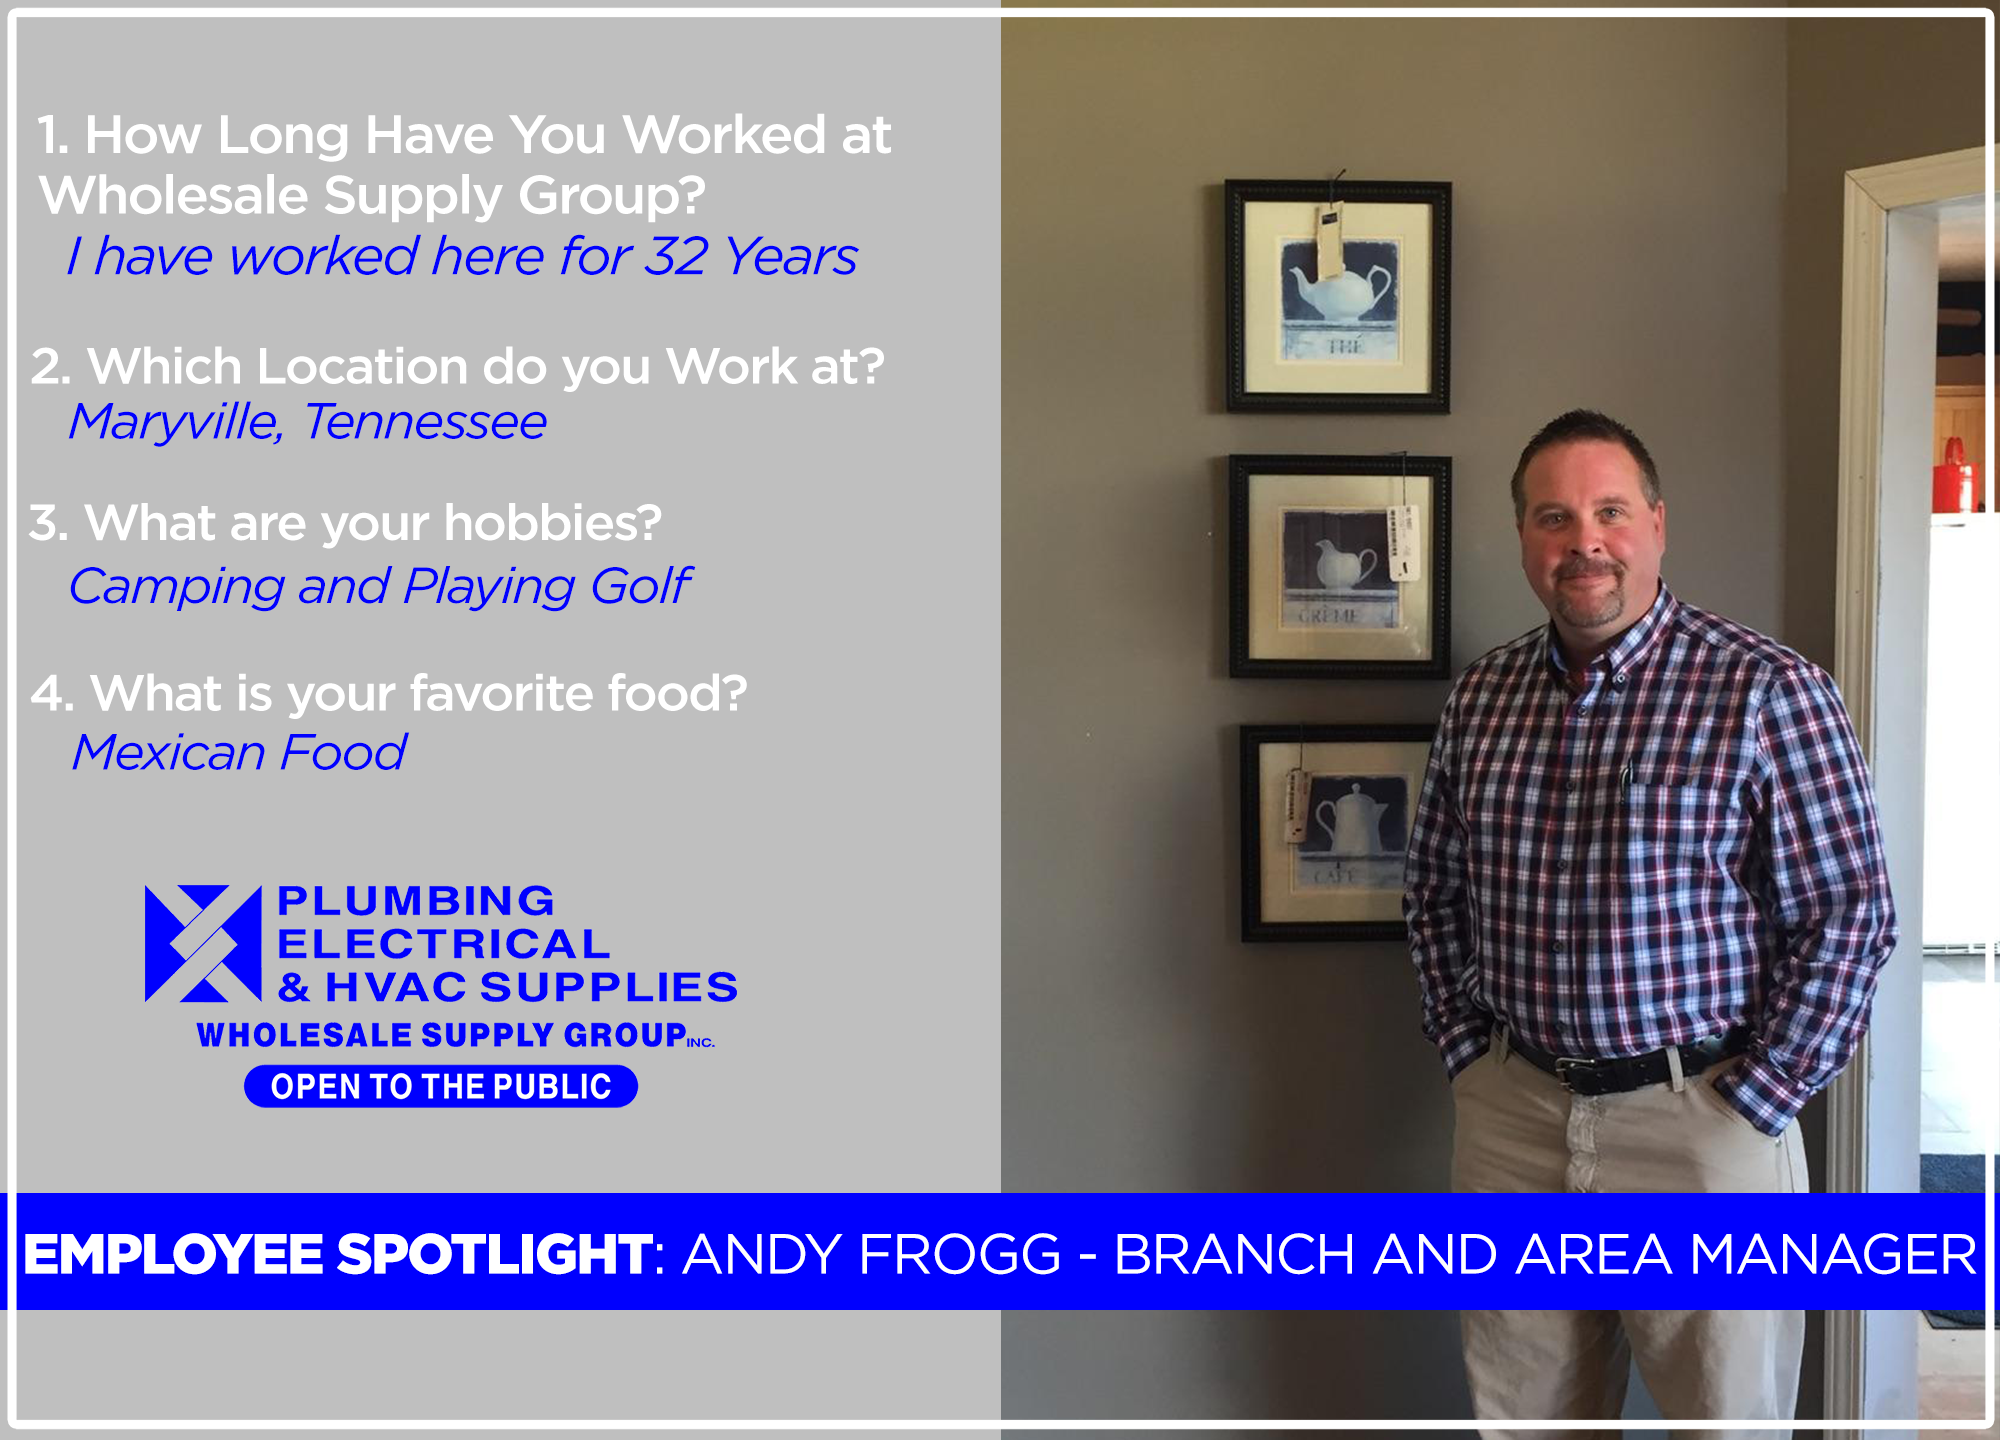 Andy Frogg